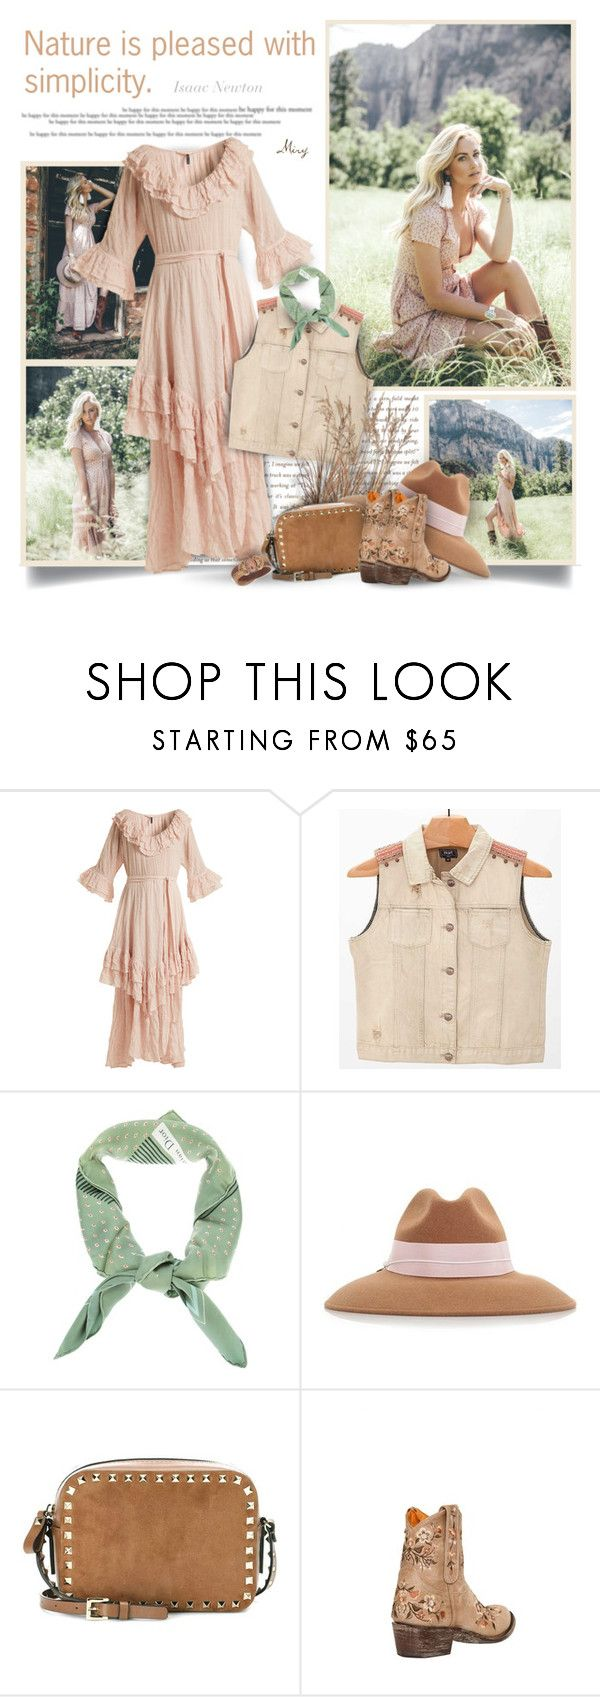 """""""Nature Is Pleased With Simplicity"""" by thewondersoffashion ❤ liked on Polyvore featuring Lisa Marie Fernandez, Christian Dior, Federica Moretti, Valentino, Mexicana and Lonna & Lilly"""